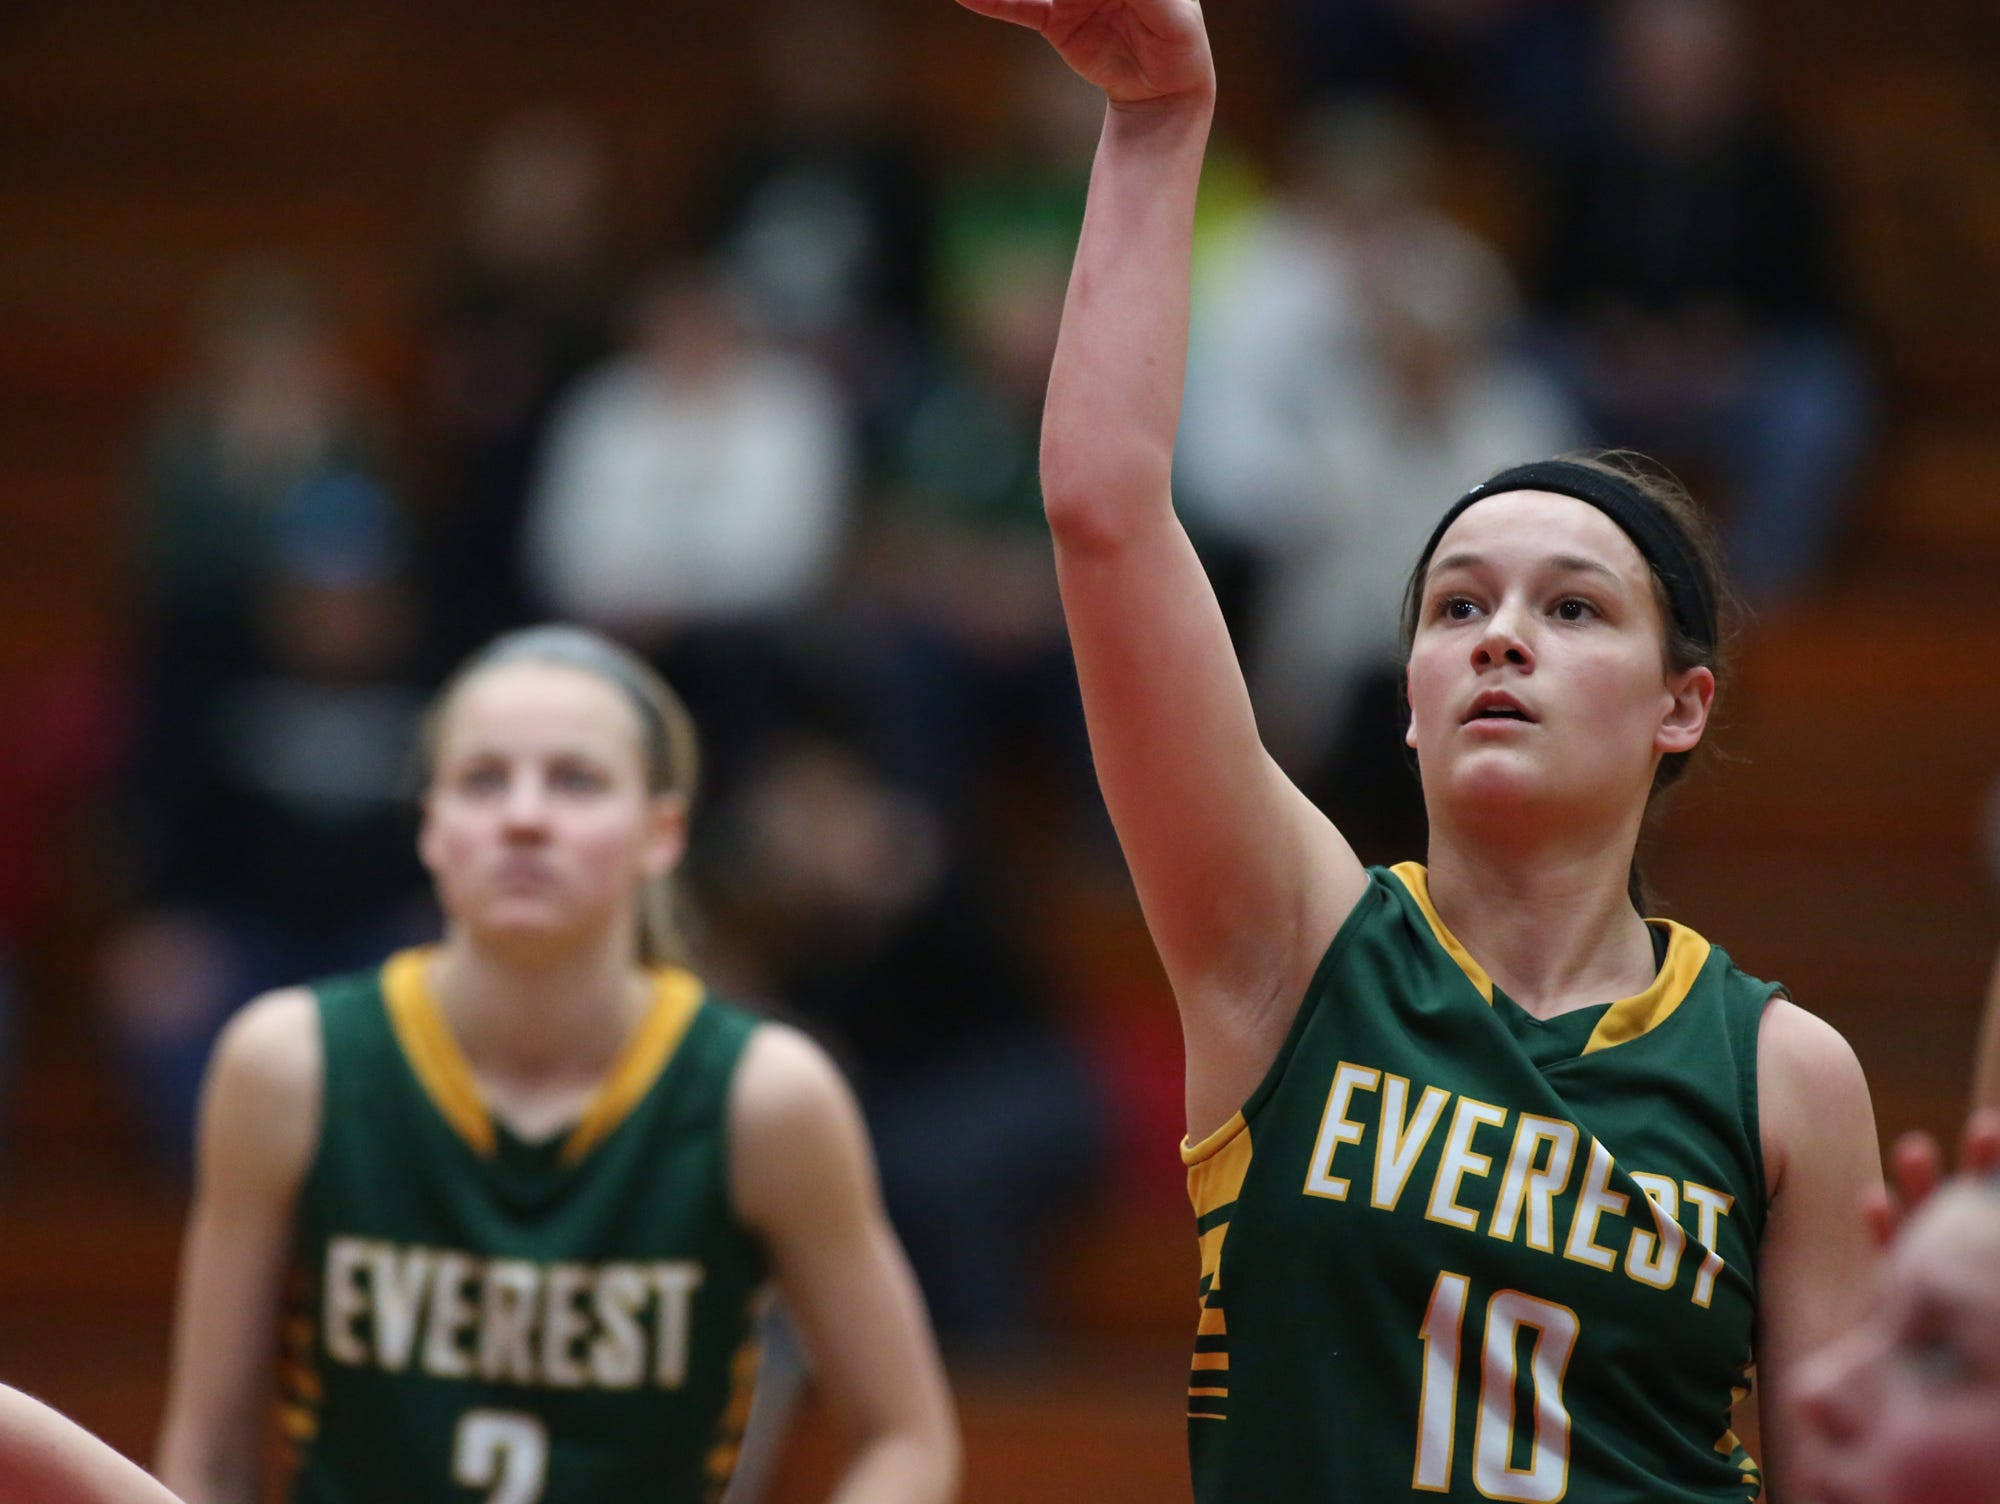 D.C. Everest's Taylor Petit is one of the top returning girls basketball players in the Wisconsin Valley Conference this season.